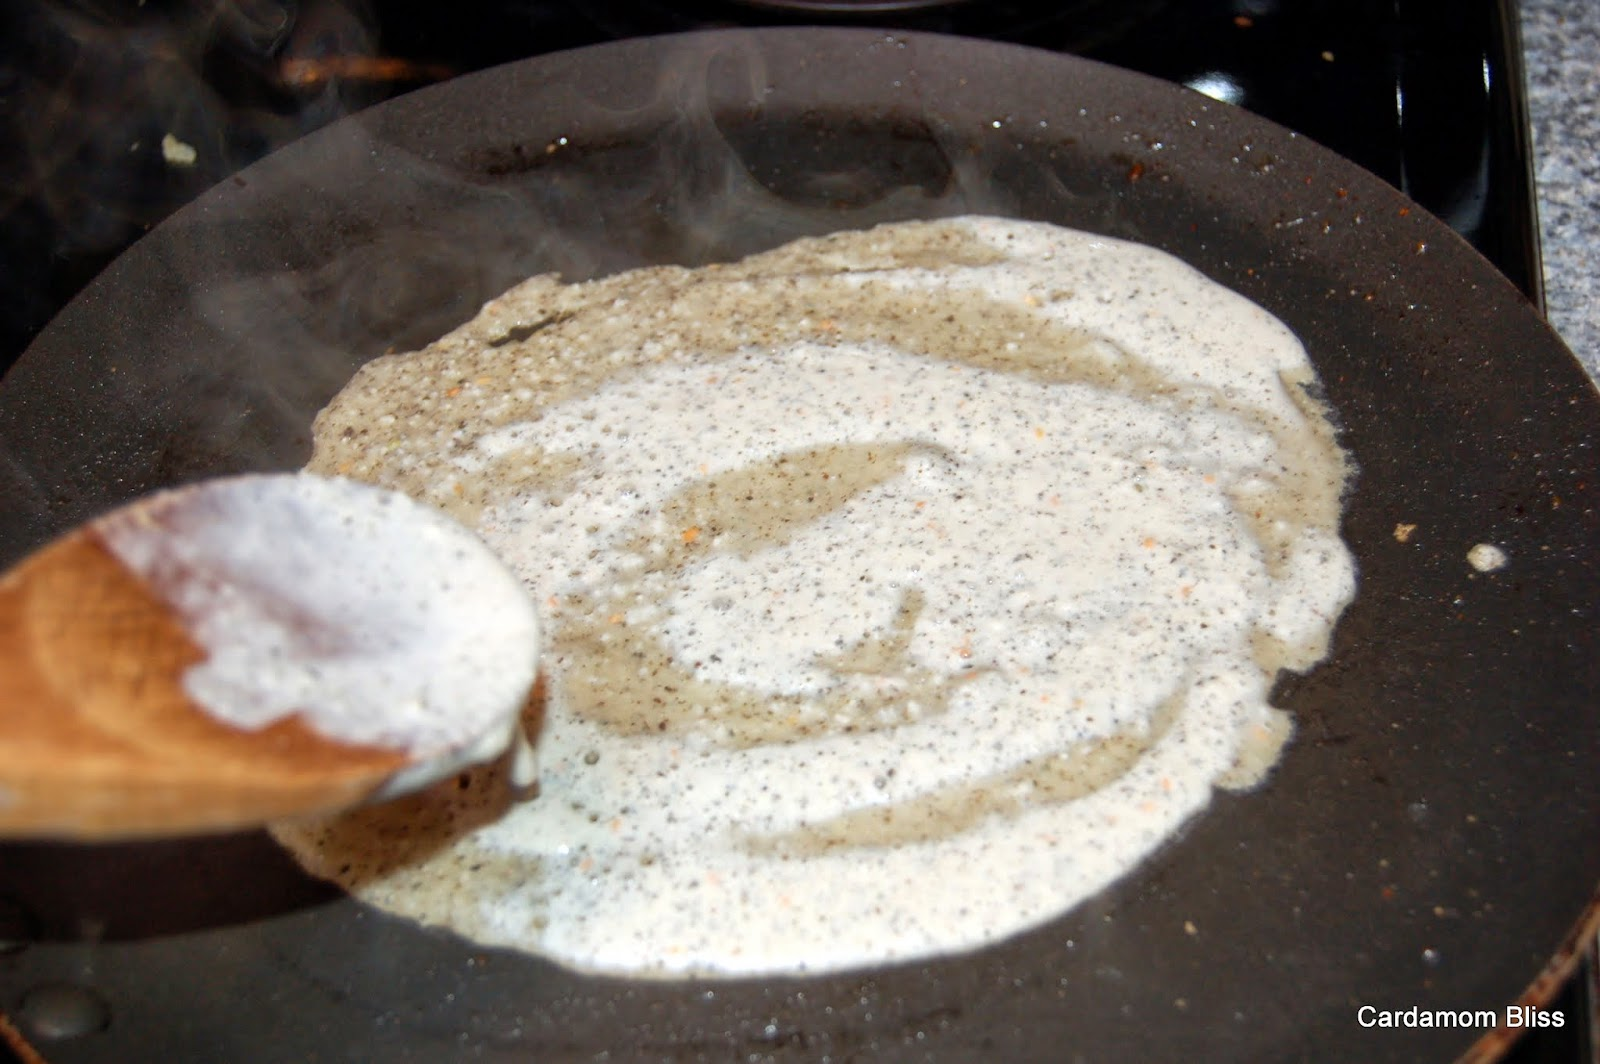 spreading the dosa batter